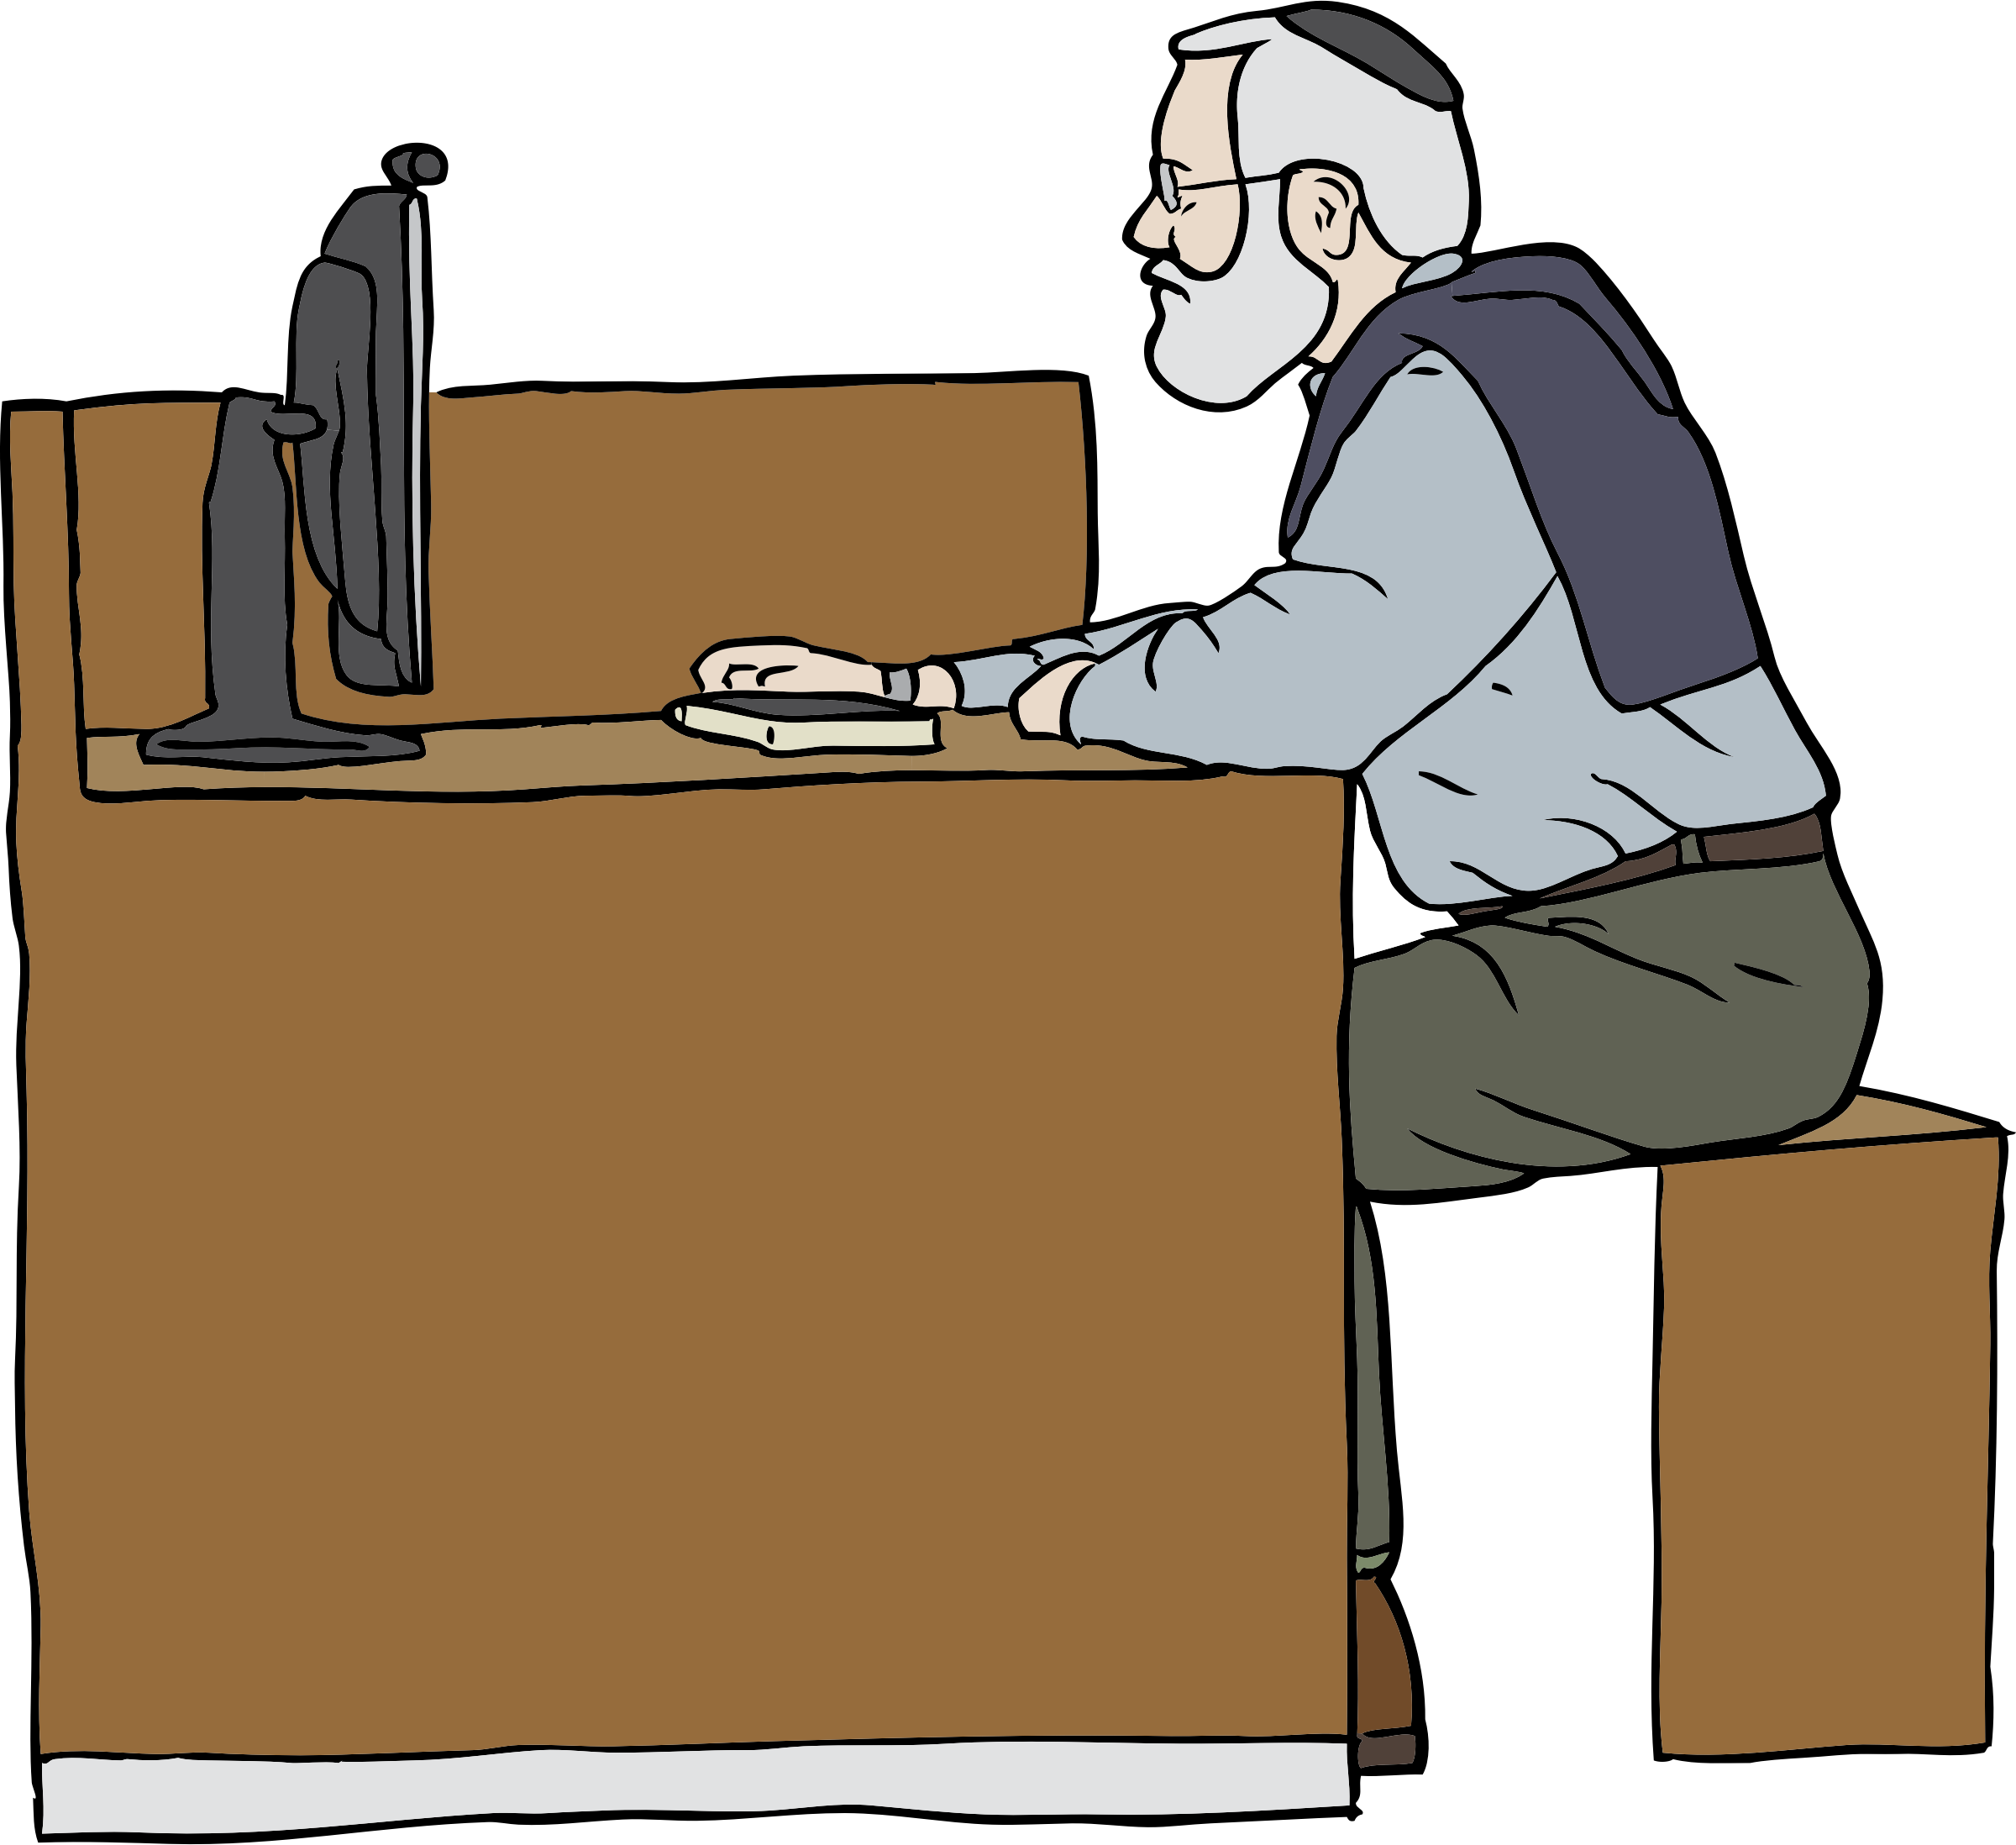 Man working on computer. Carpenter drawing work clipart clip royalty free library